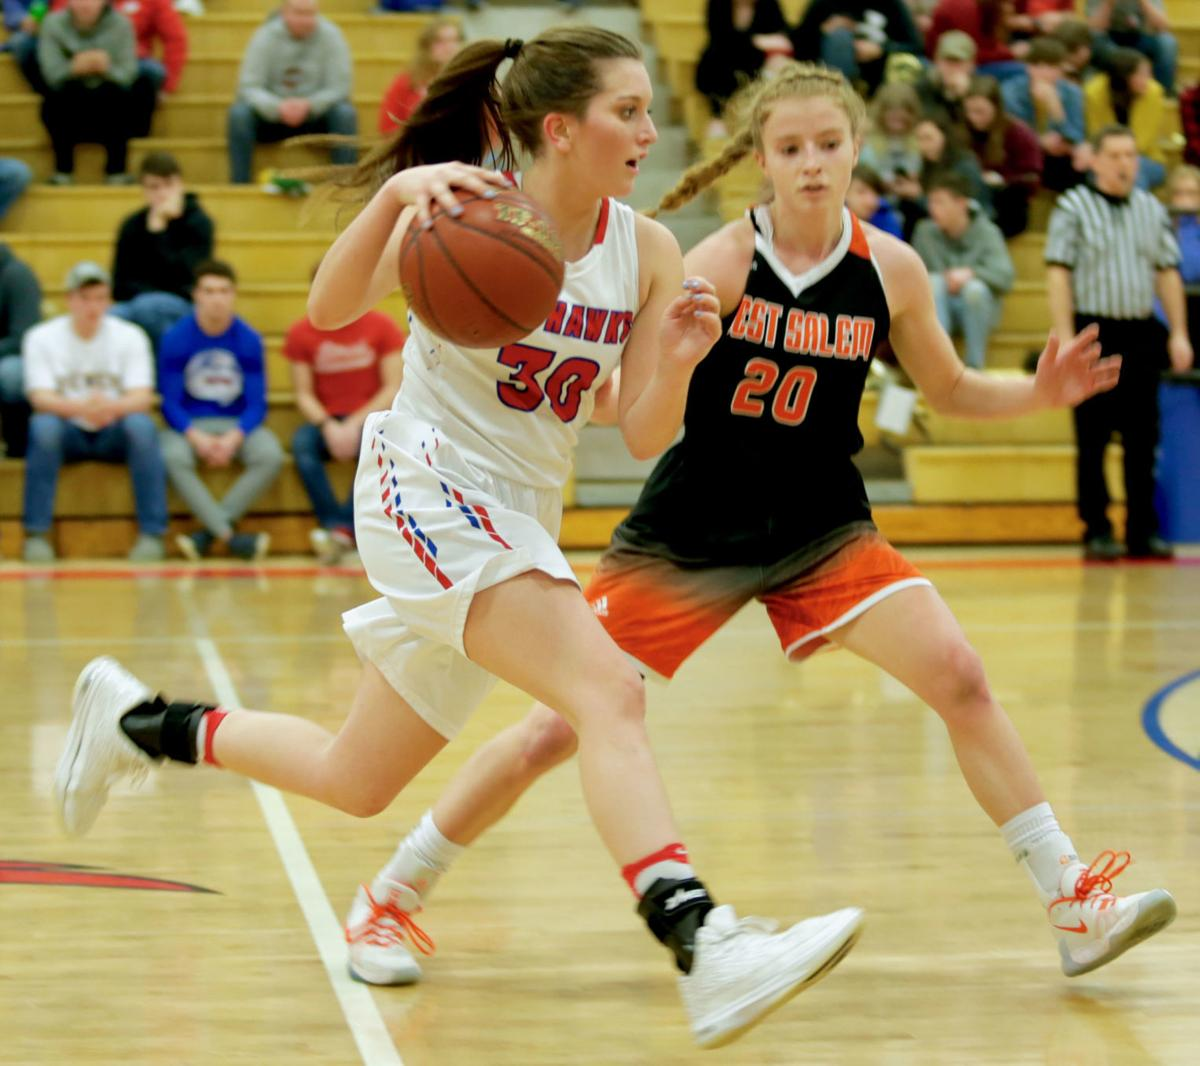 West Salem vs Gale-Ettrick-Trempealeau girl's basketball